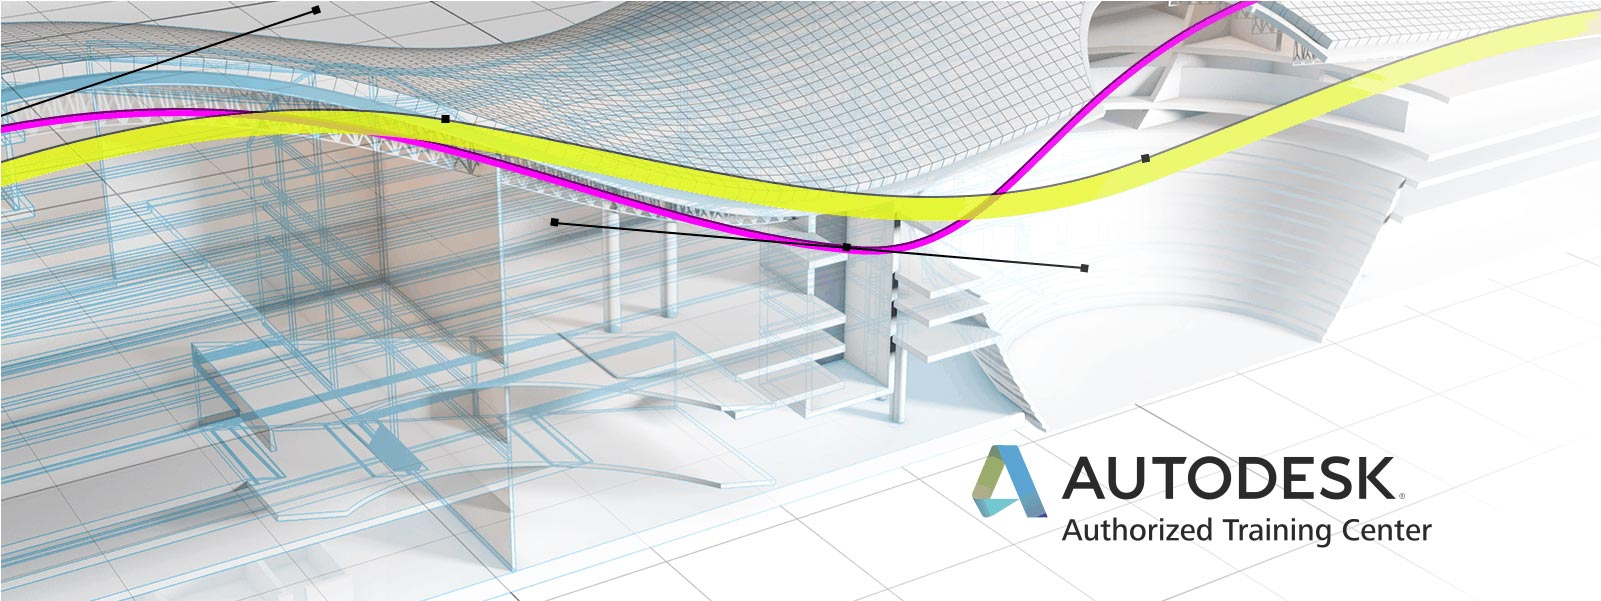 Autodesk ATC